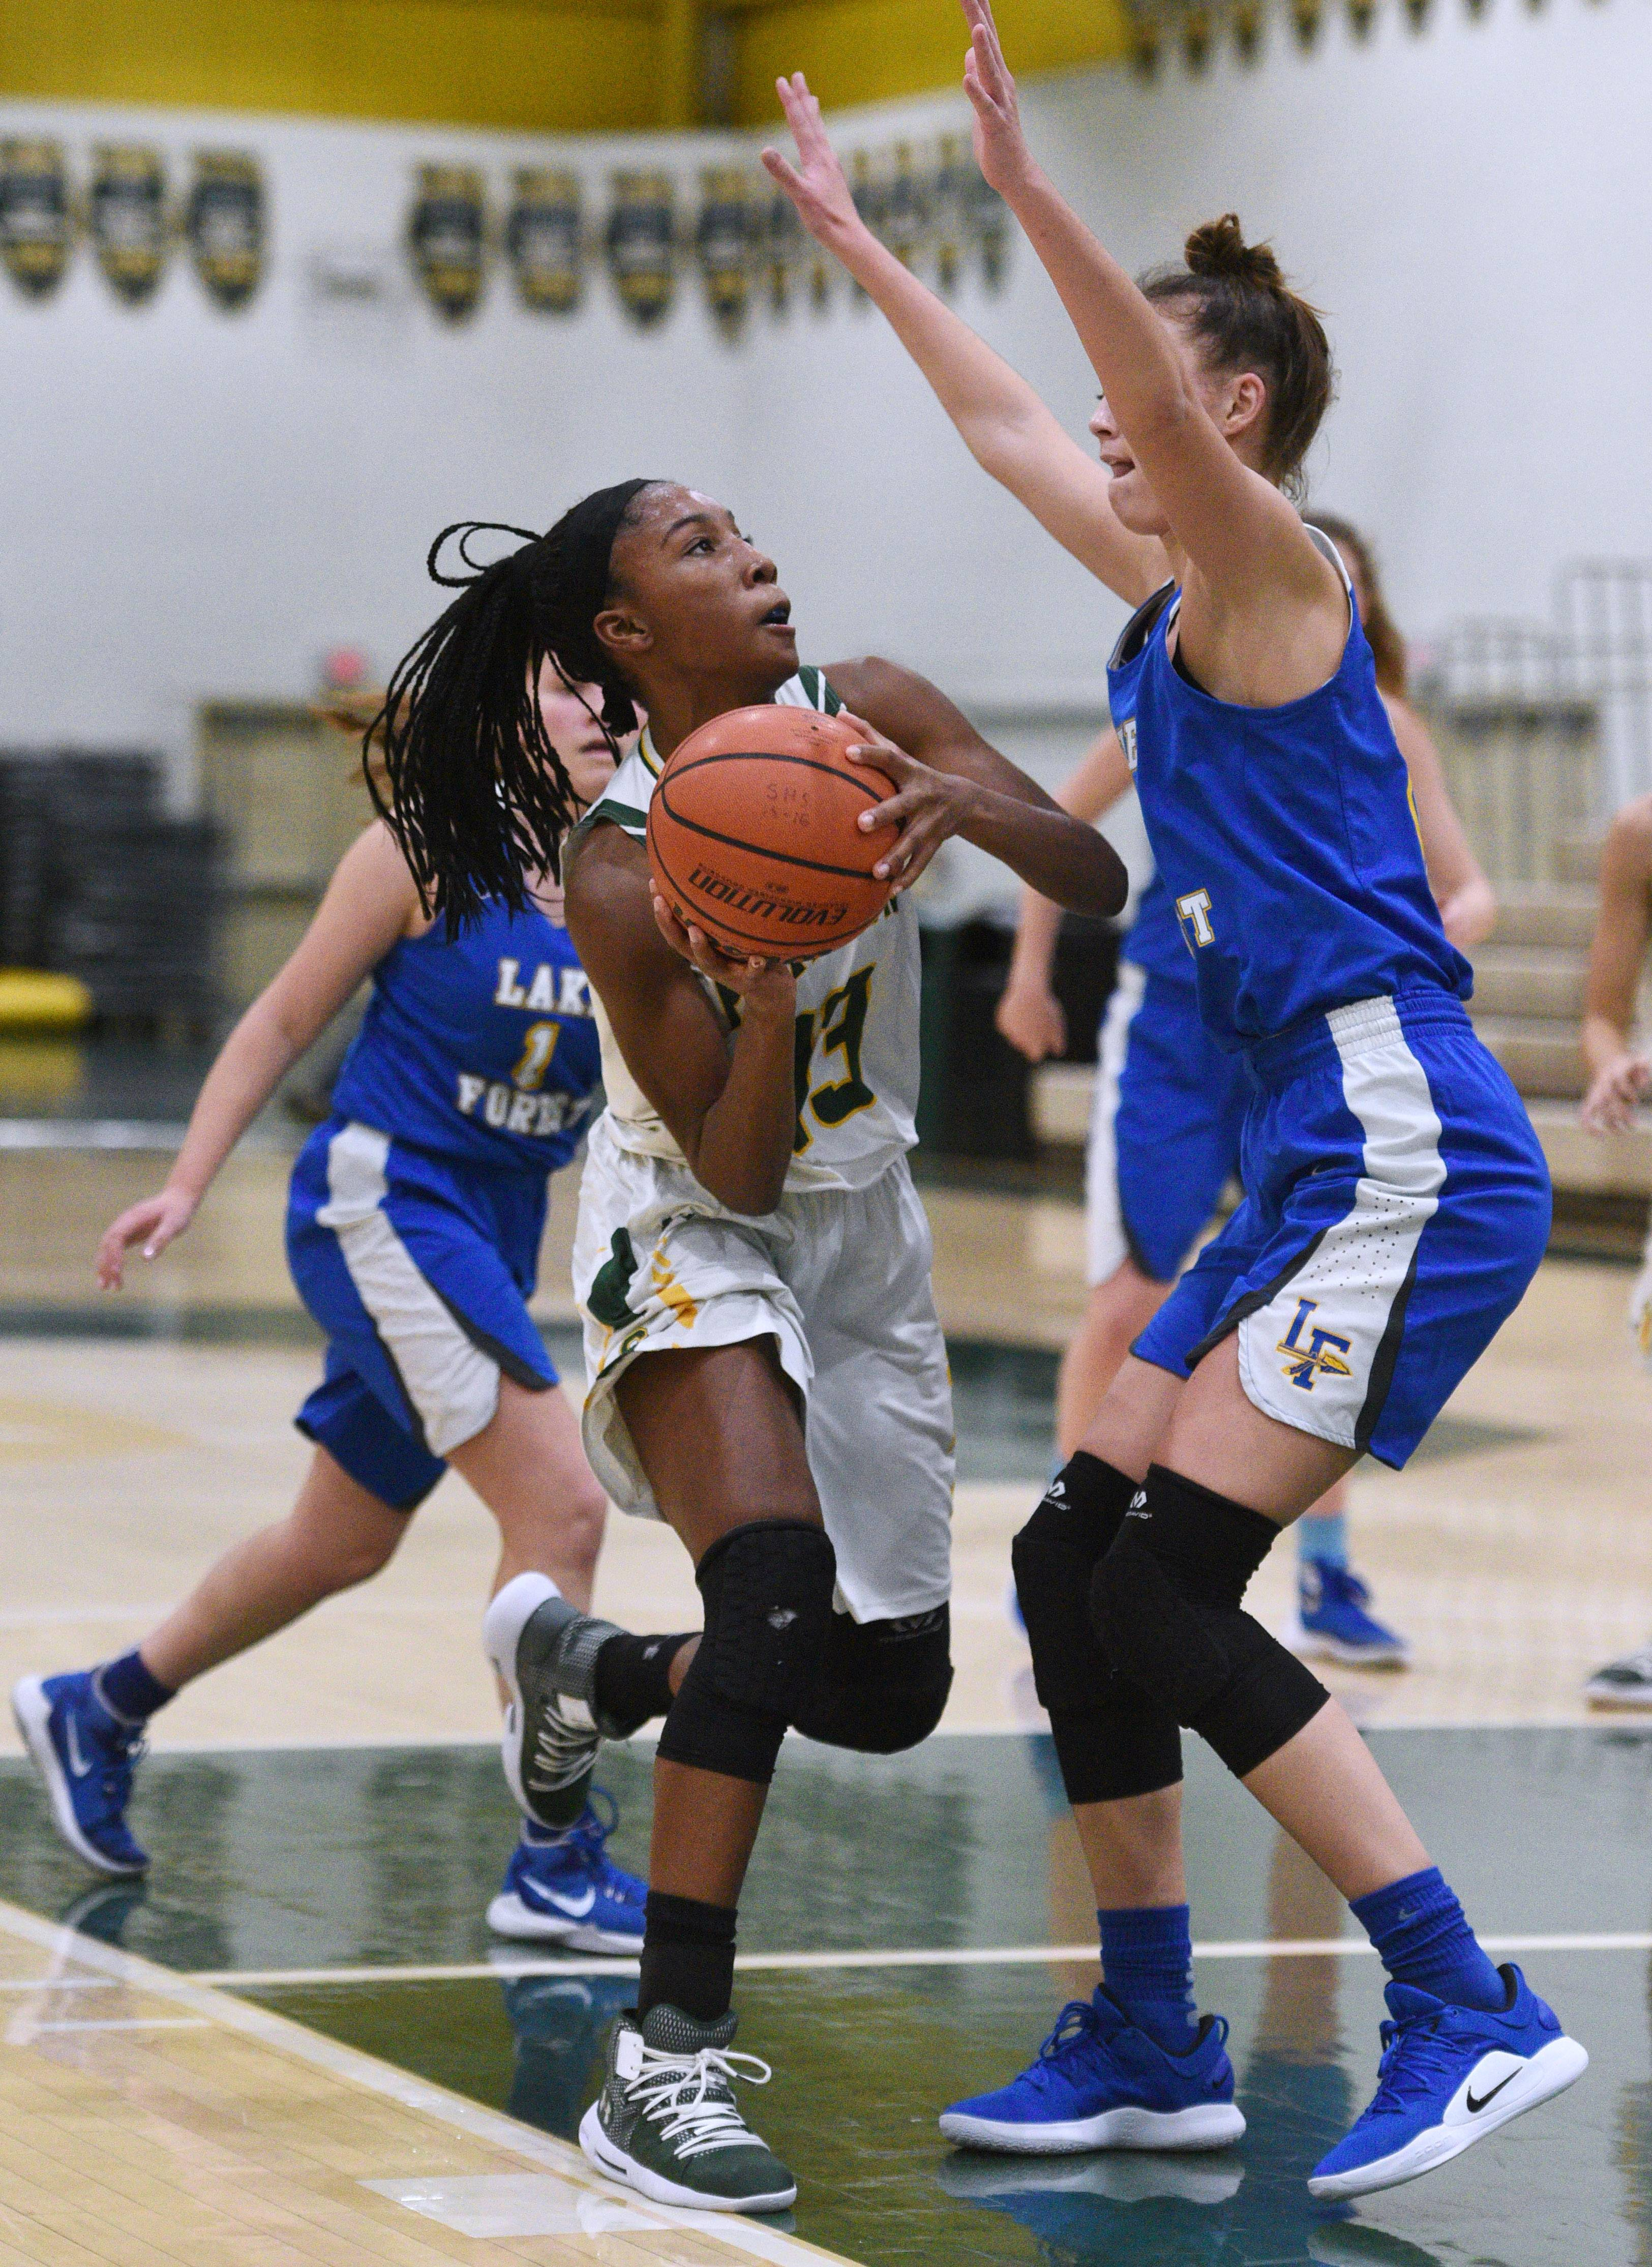 Stevenson's Simone Sawyer (13) looks for a shot over Lake Forest's Halle Douglass during Friday's girls basketball game in Lincolnshire.